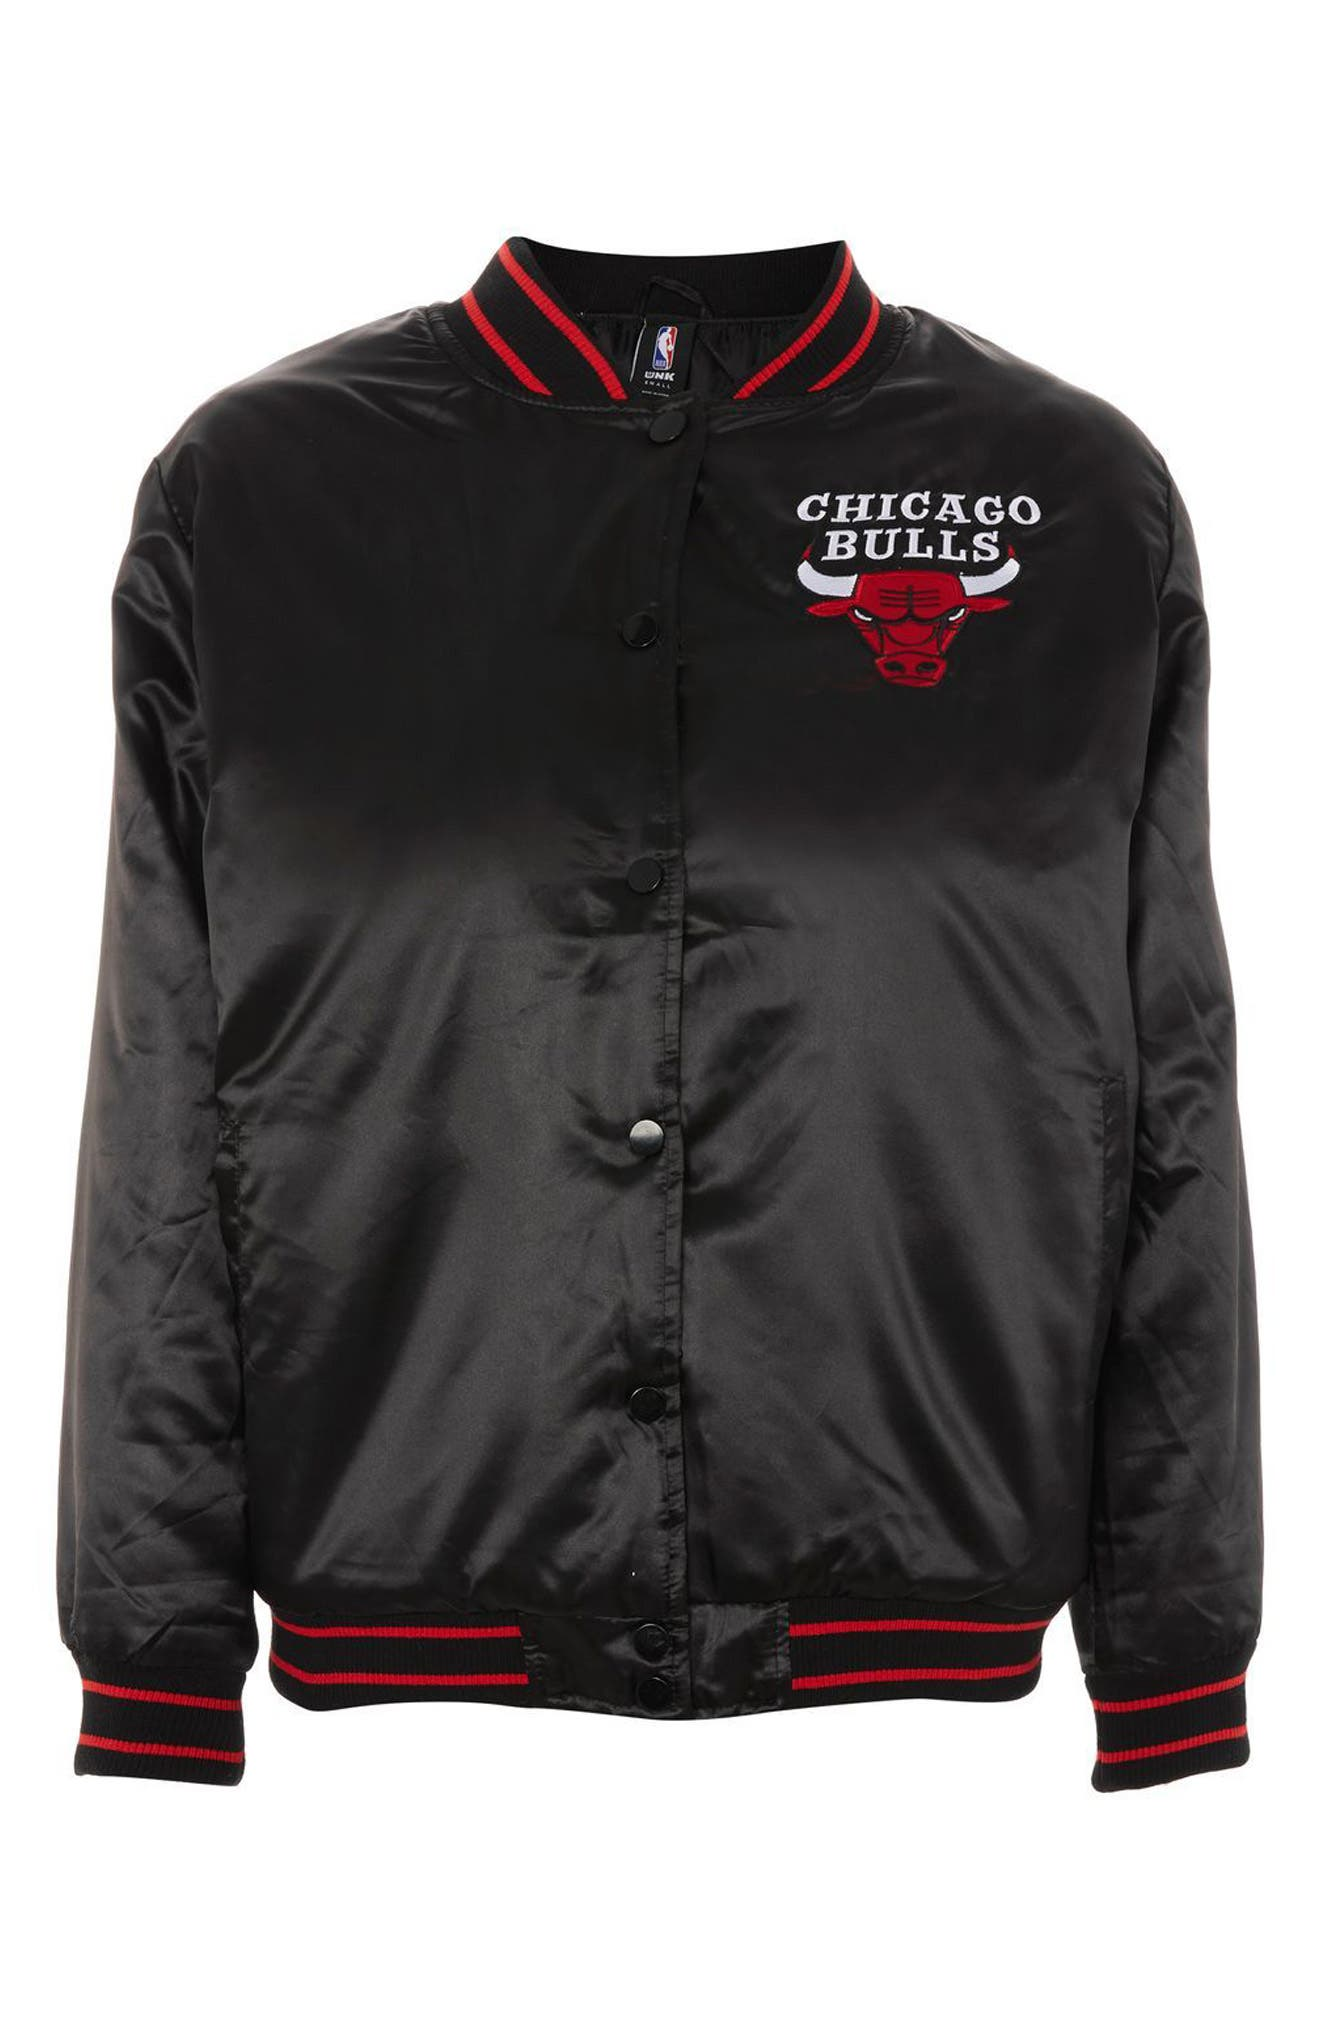 Alternate Image 1 Selected - Topshop x UNK Chicago Bulls Bomber Jacket